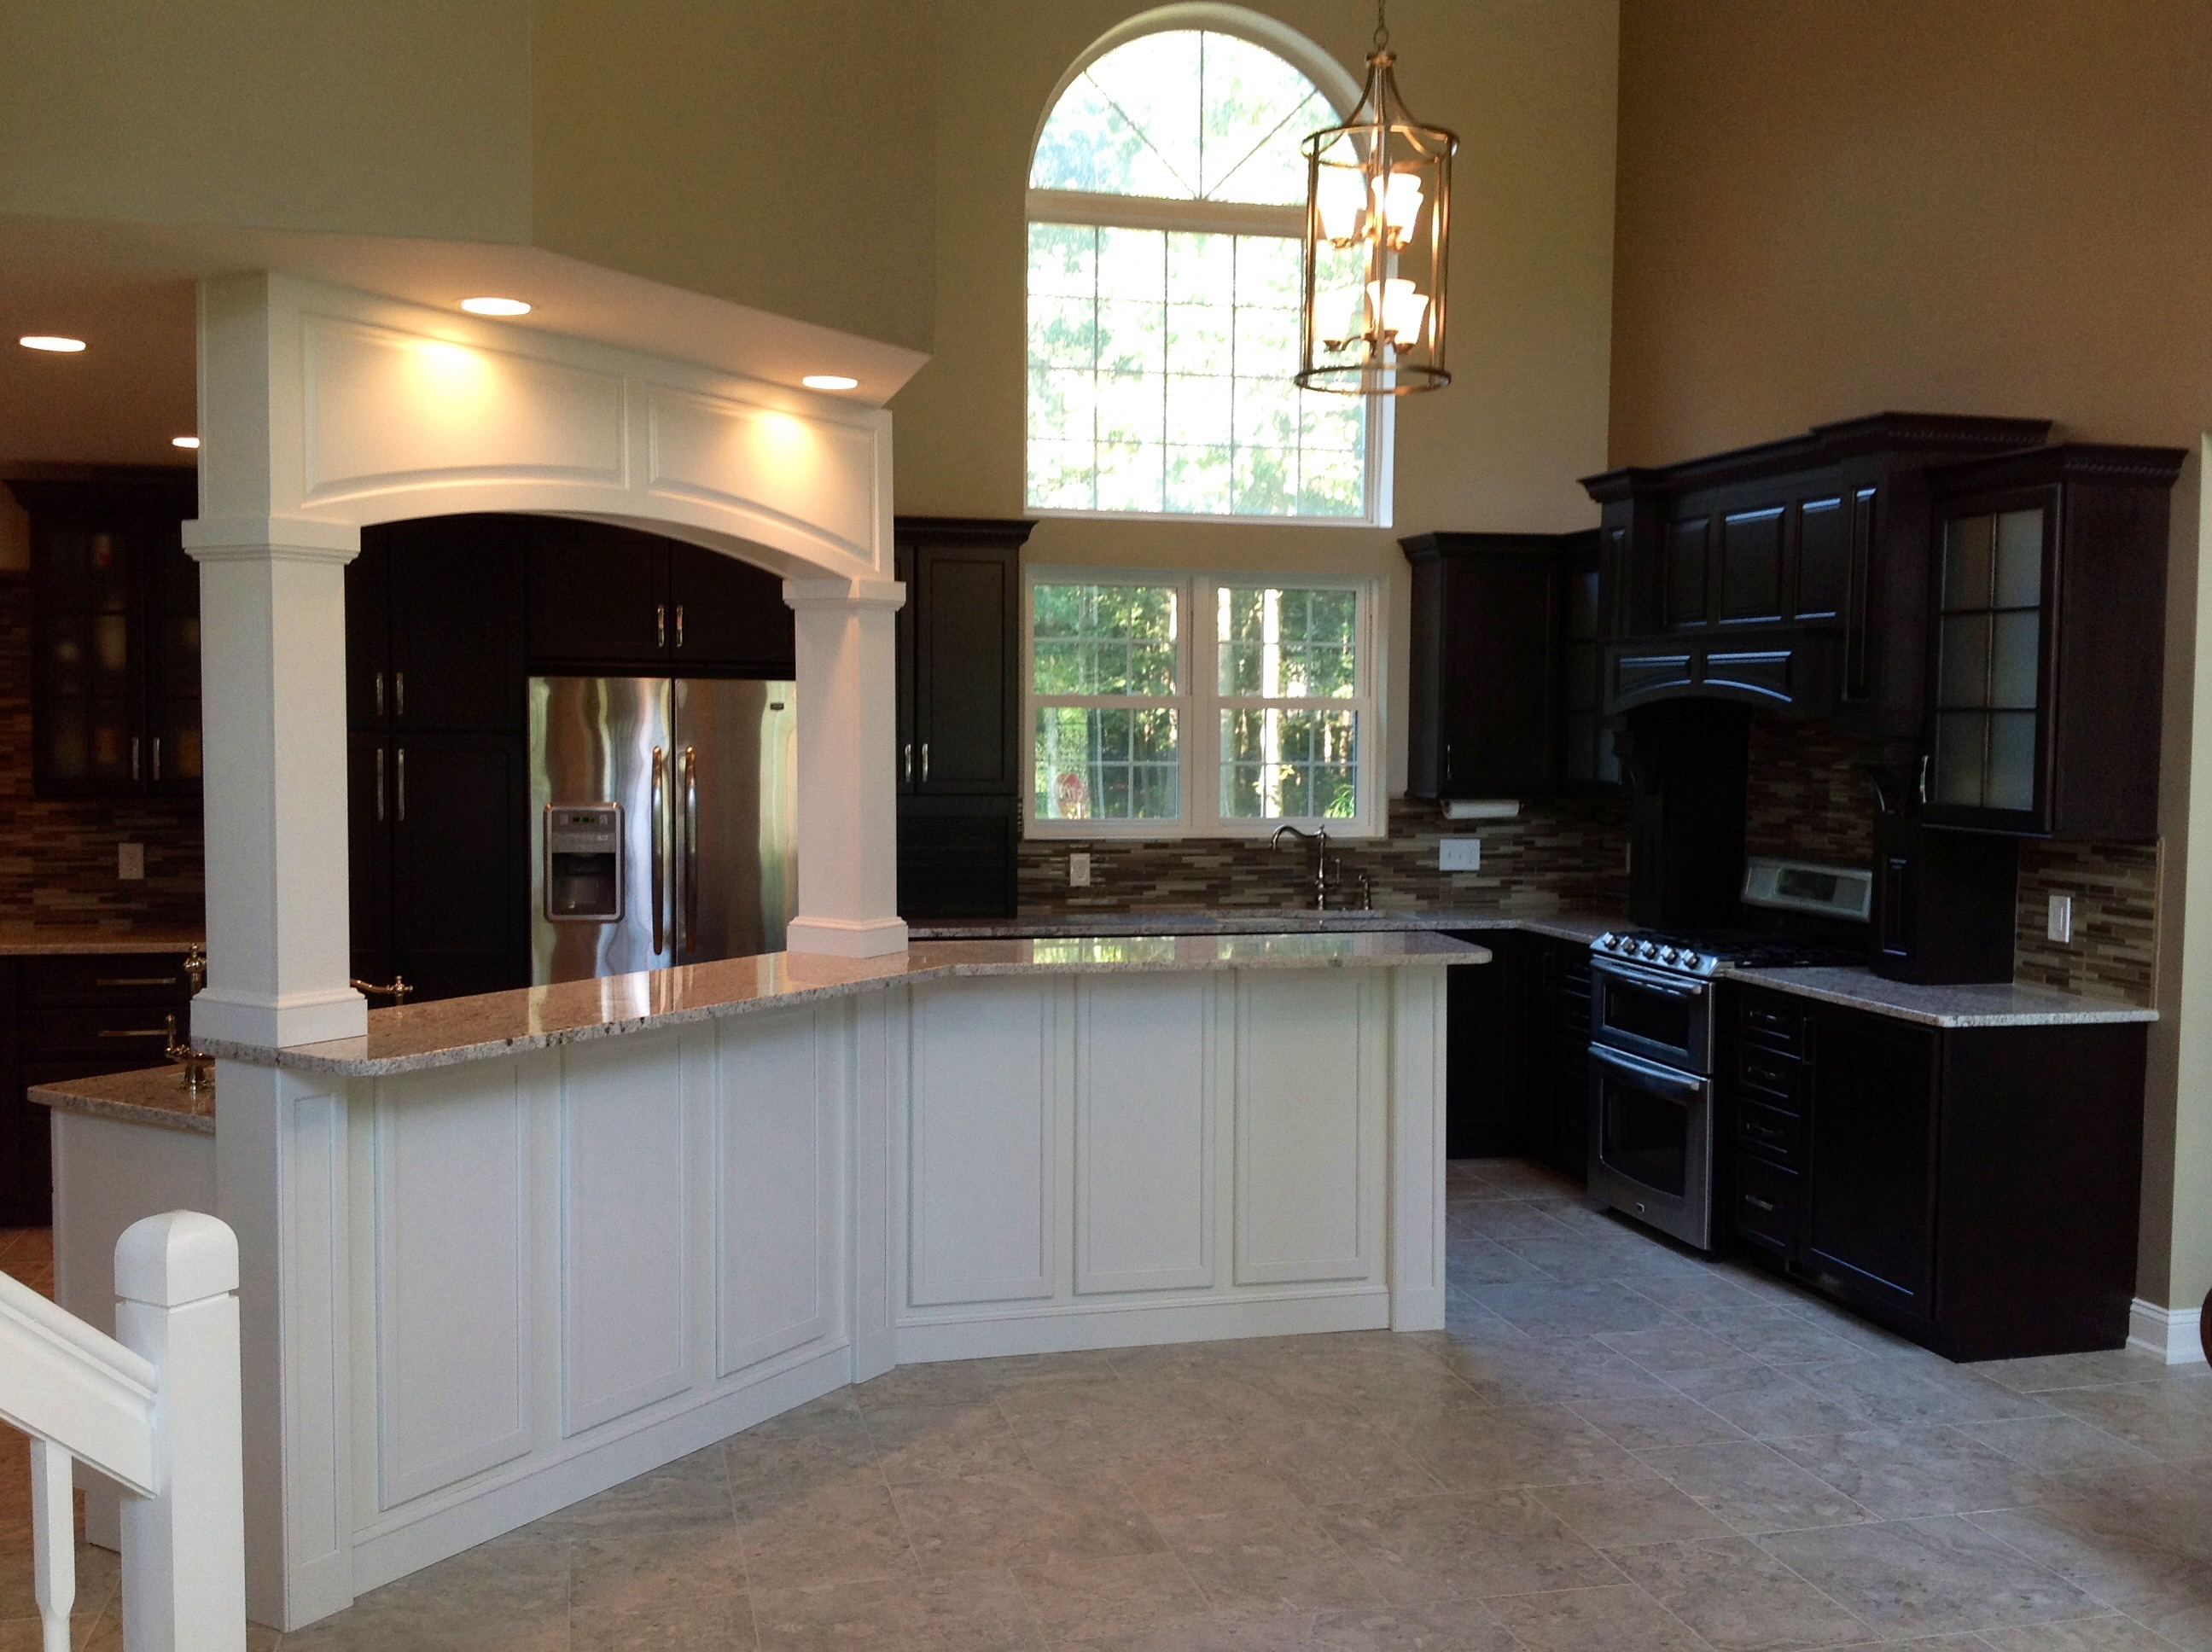 New Kitchen Remodel Houses Interior Design